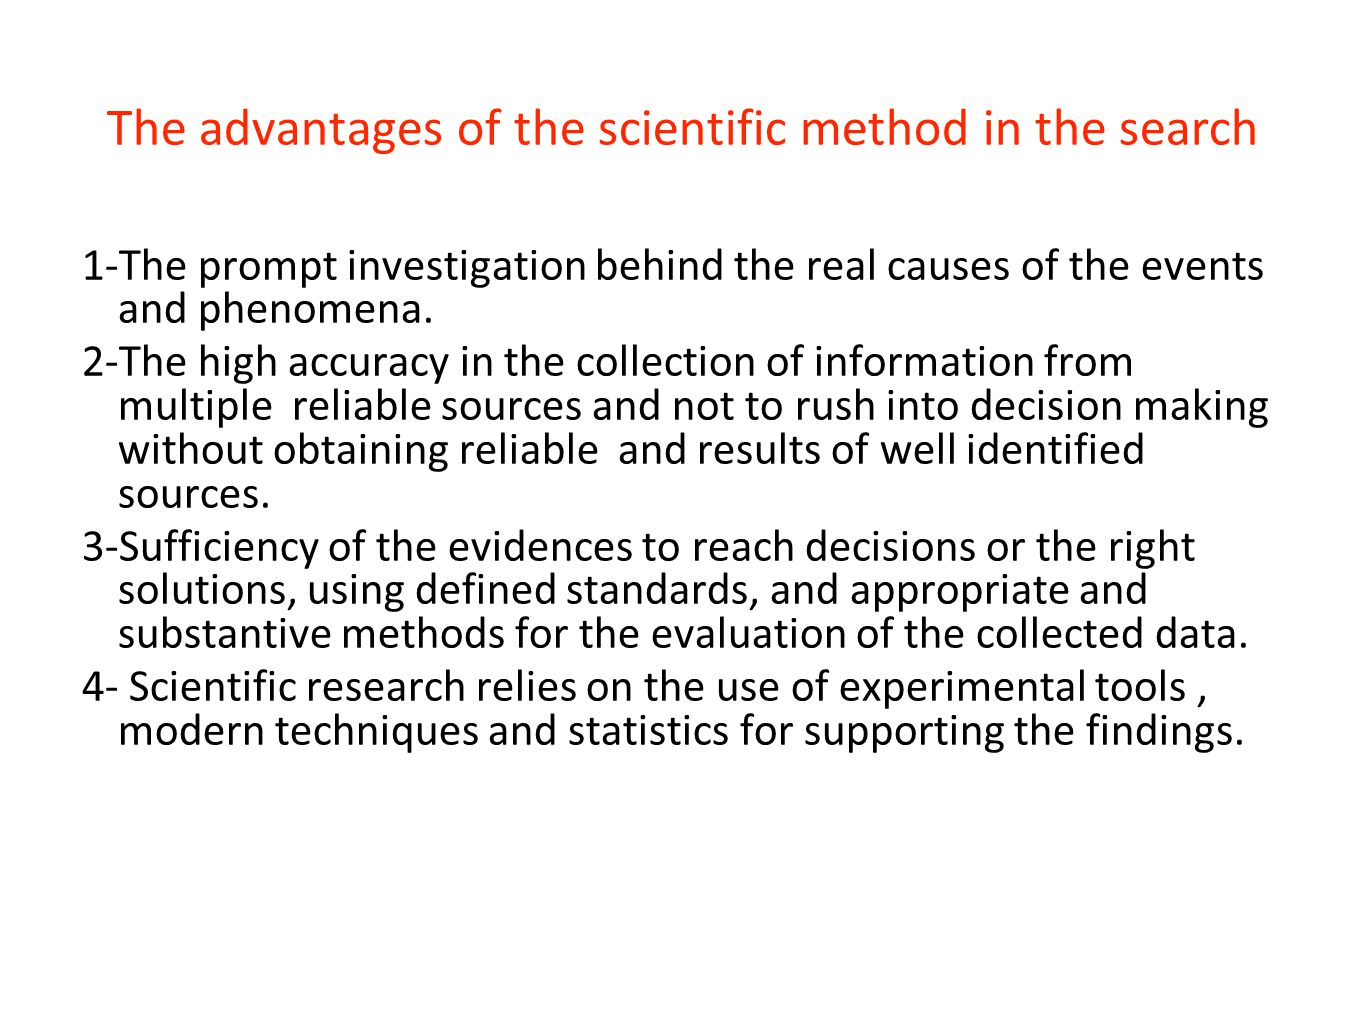 The advantages of the scientific method in the search 1-The prompt investigation behind the real causes of the events and phenomena. 2-The high accura